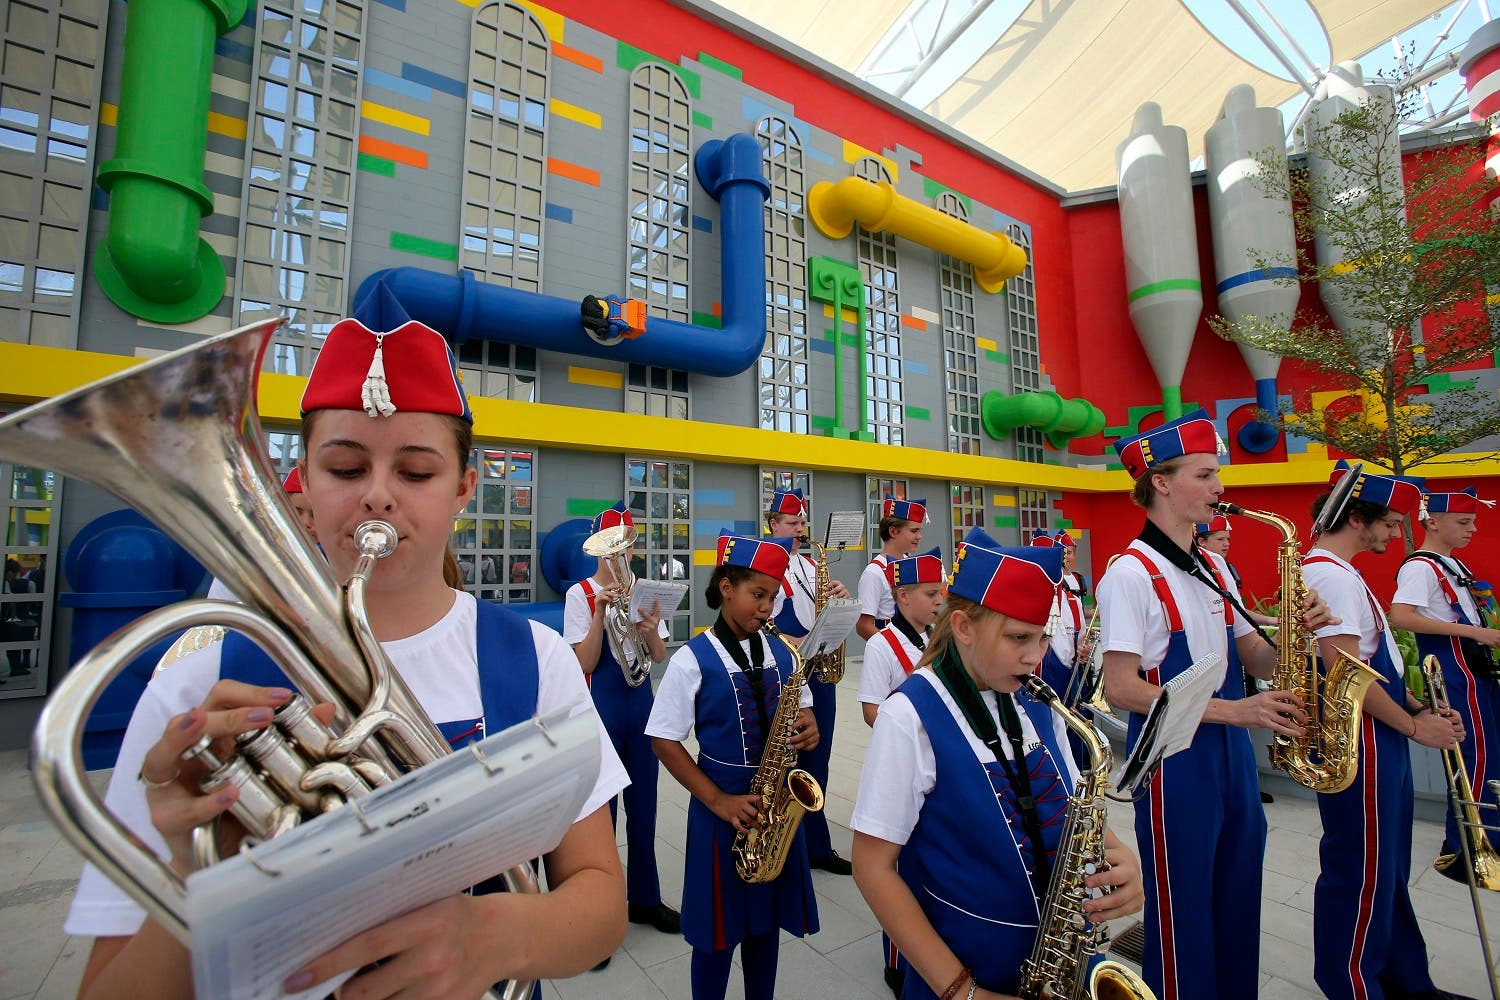 A band plays music during the opening of Legoland Dubai, part of the larger Dubai Parks & Resorts project, in Dubai (Photo: AP/Kamran Jebreili)